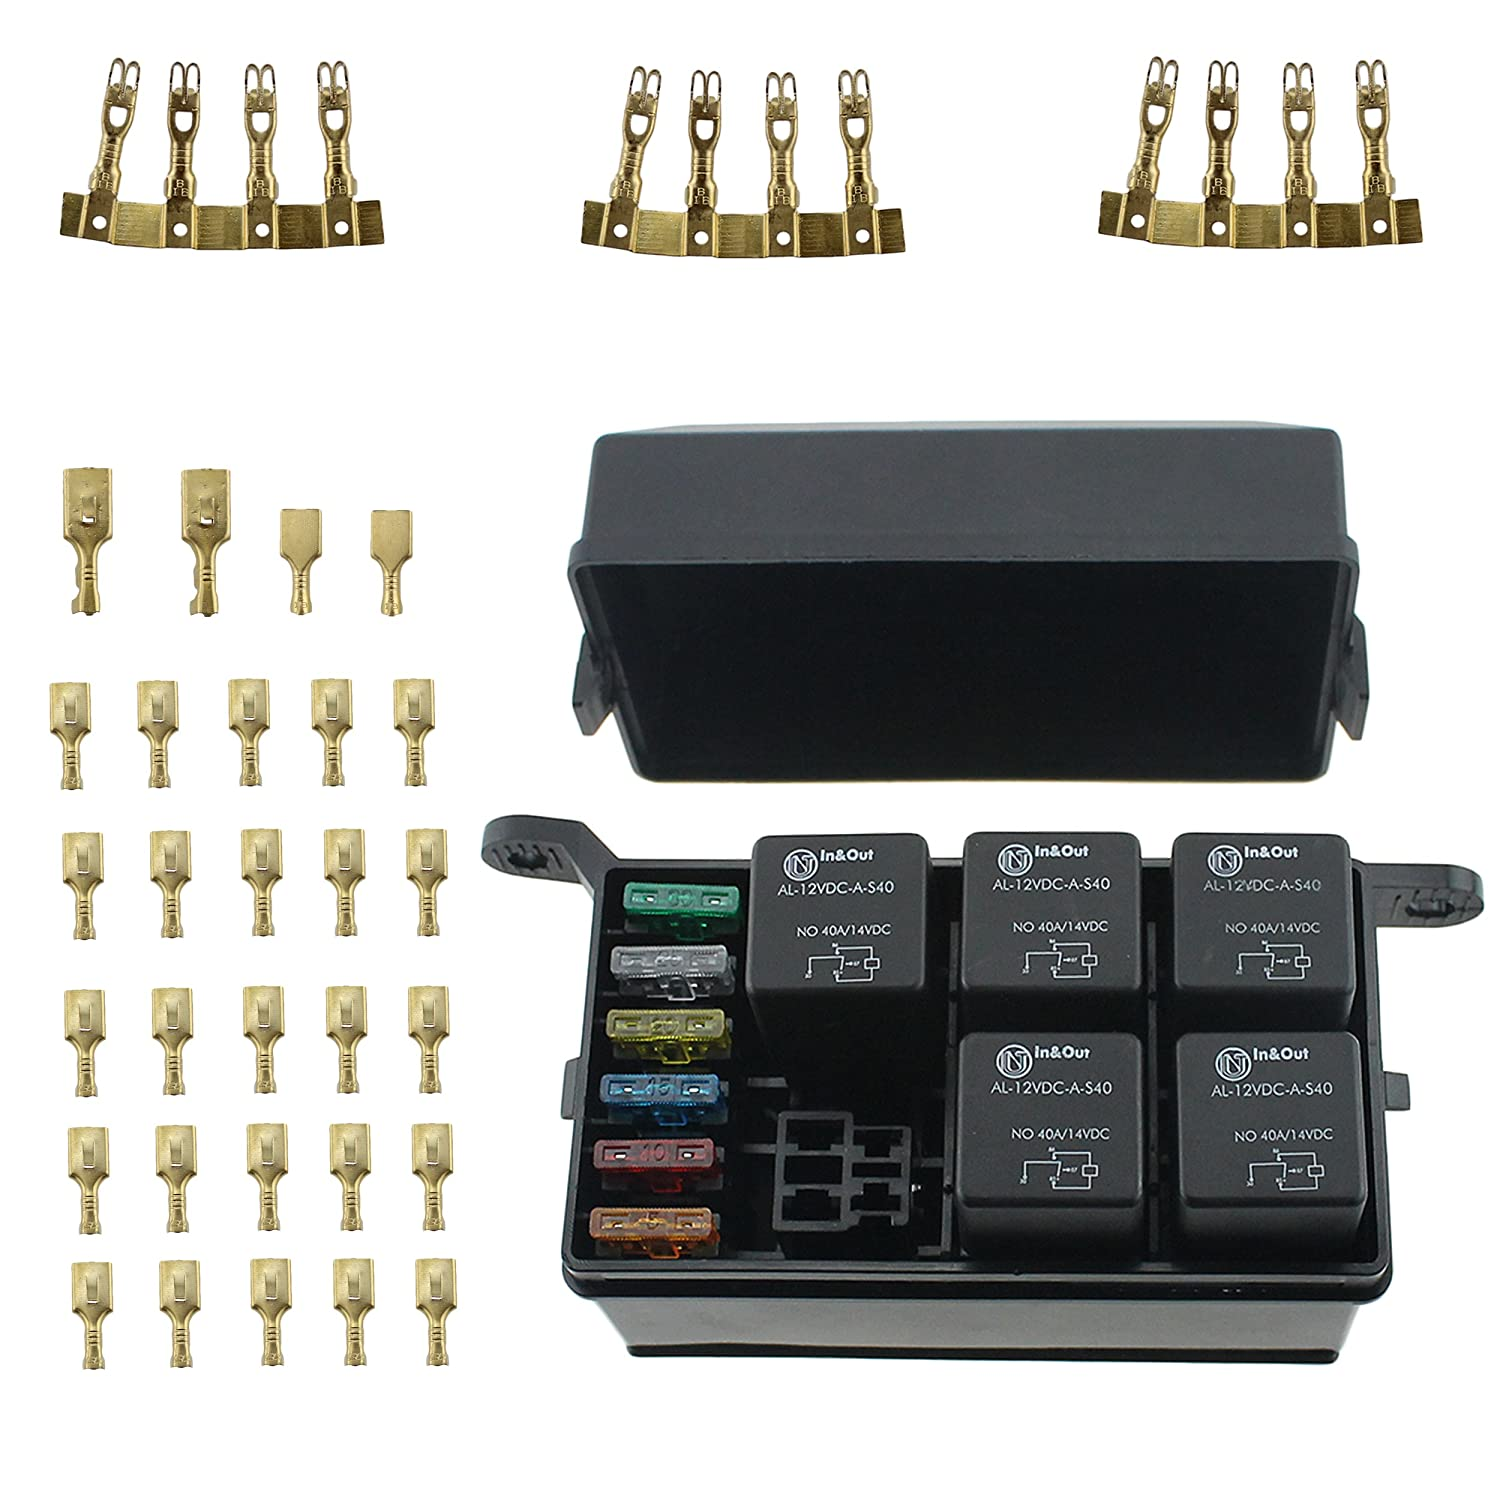 81Uj6Pmk1gL._SL1500_ amazon com fuse boxes fuses & accessories automotive how to open the fuse relay box 1998 suburban at fashall.co